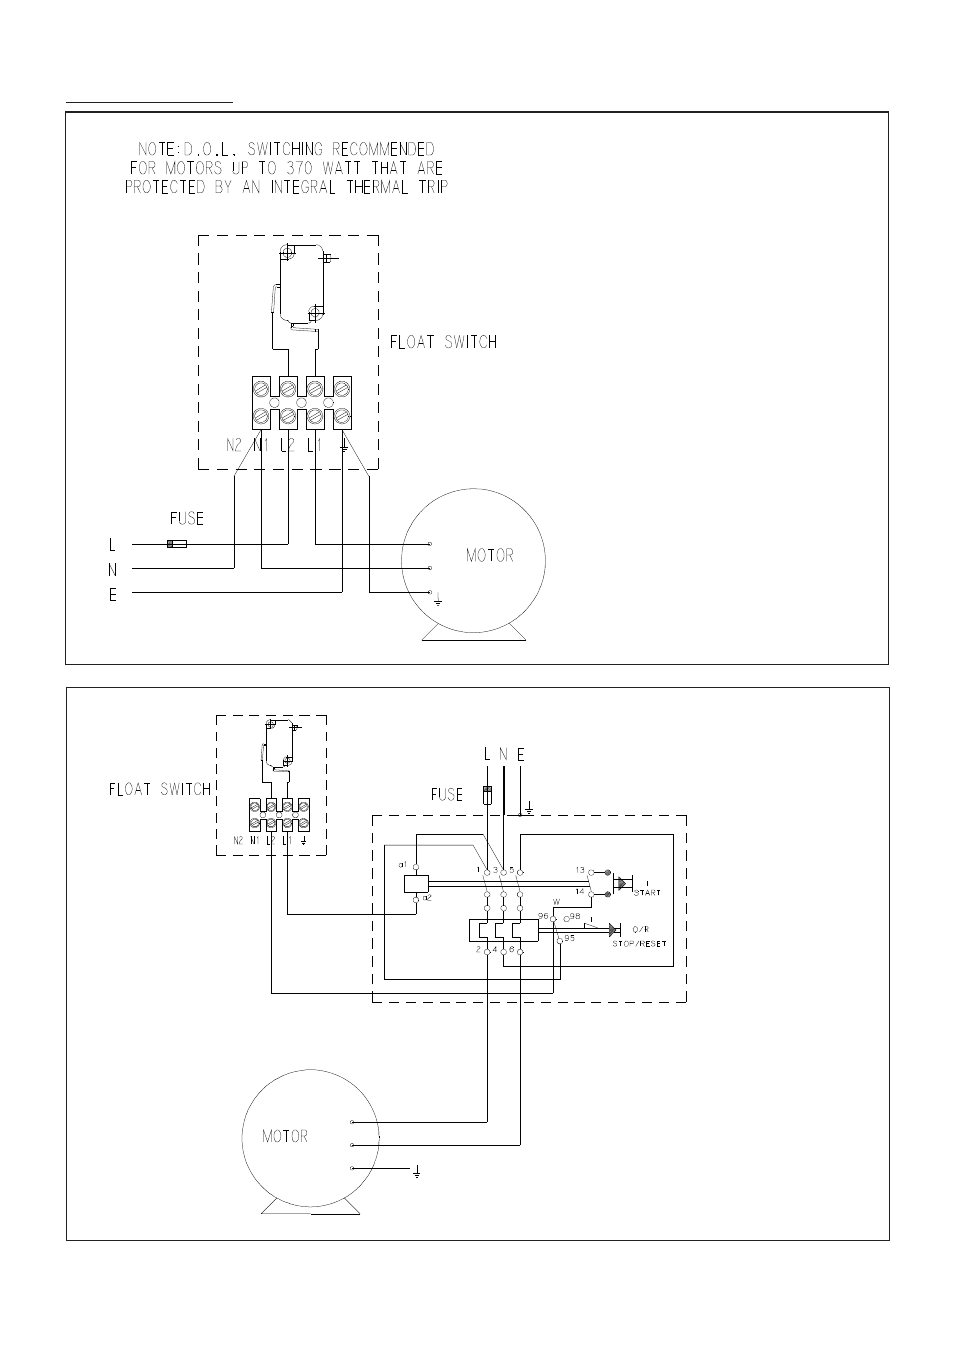 Wiring Diagrams Stuart Turner Float Switch User Manual Page 11 16 Single Pole Diagram To Motor